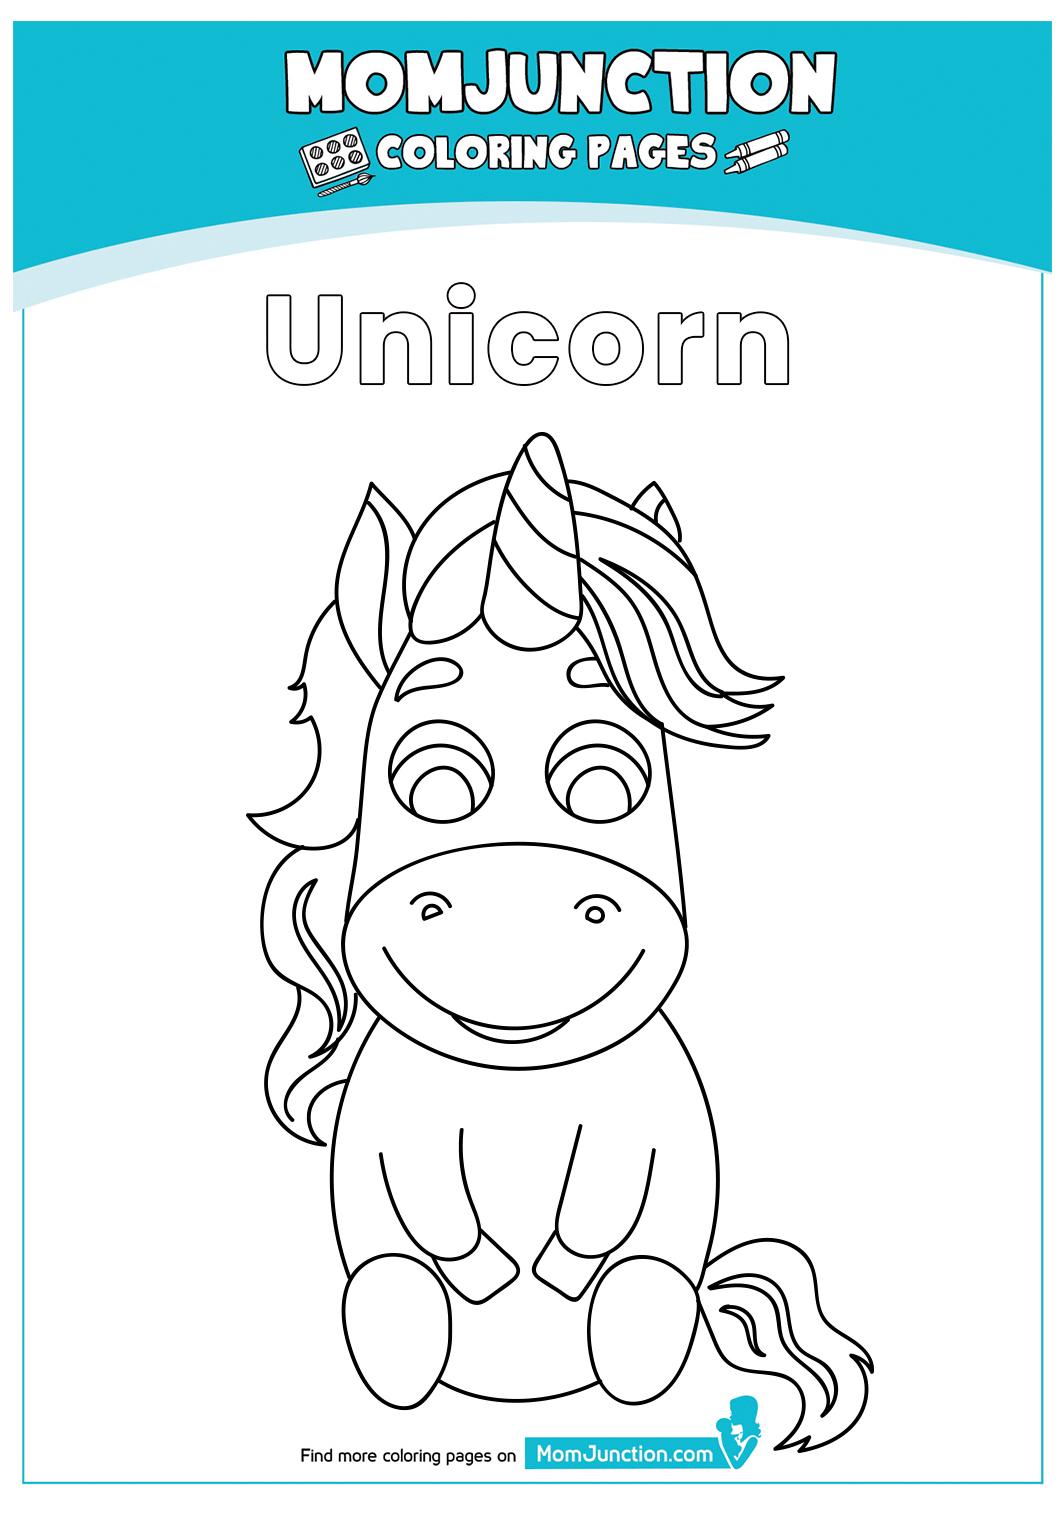 Unicorn Coloring Pages Cartoon Coloring Page